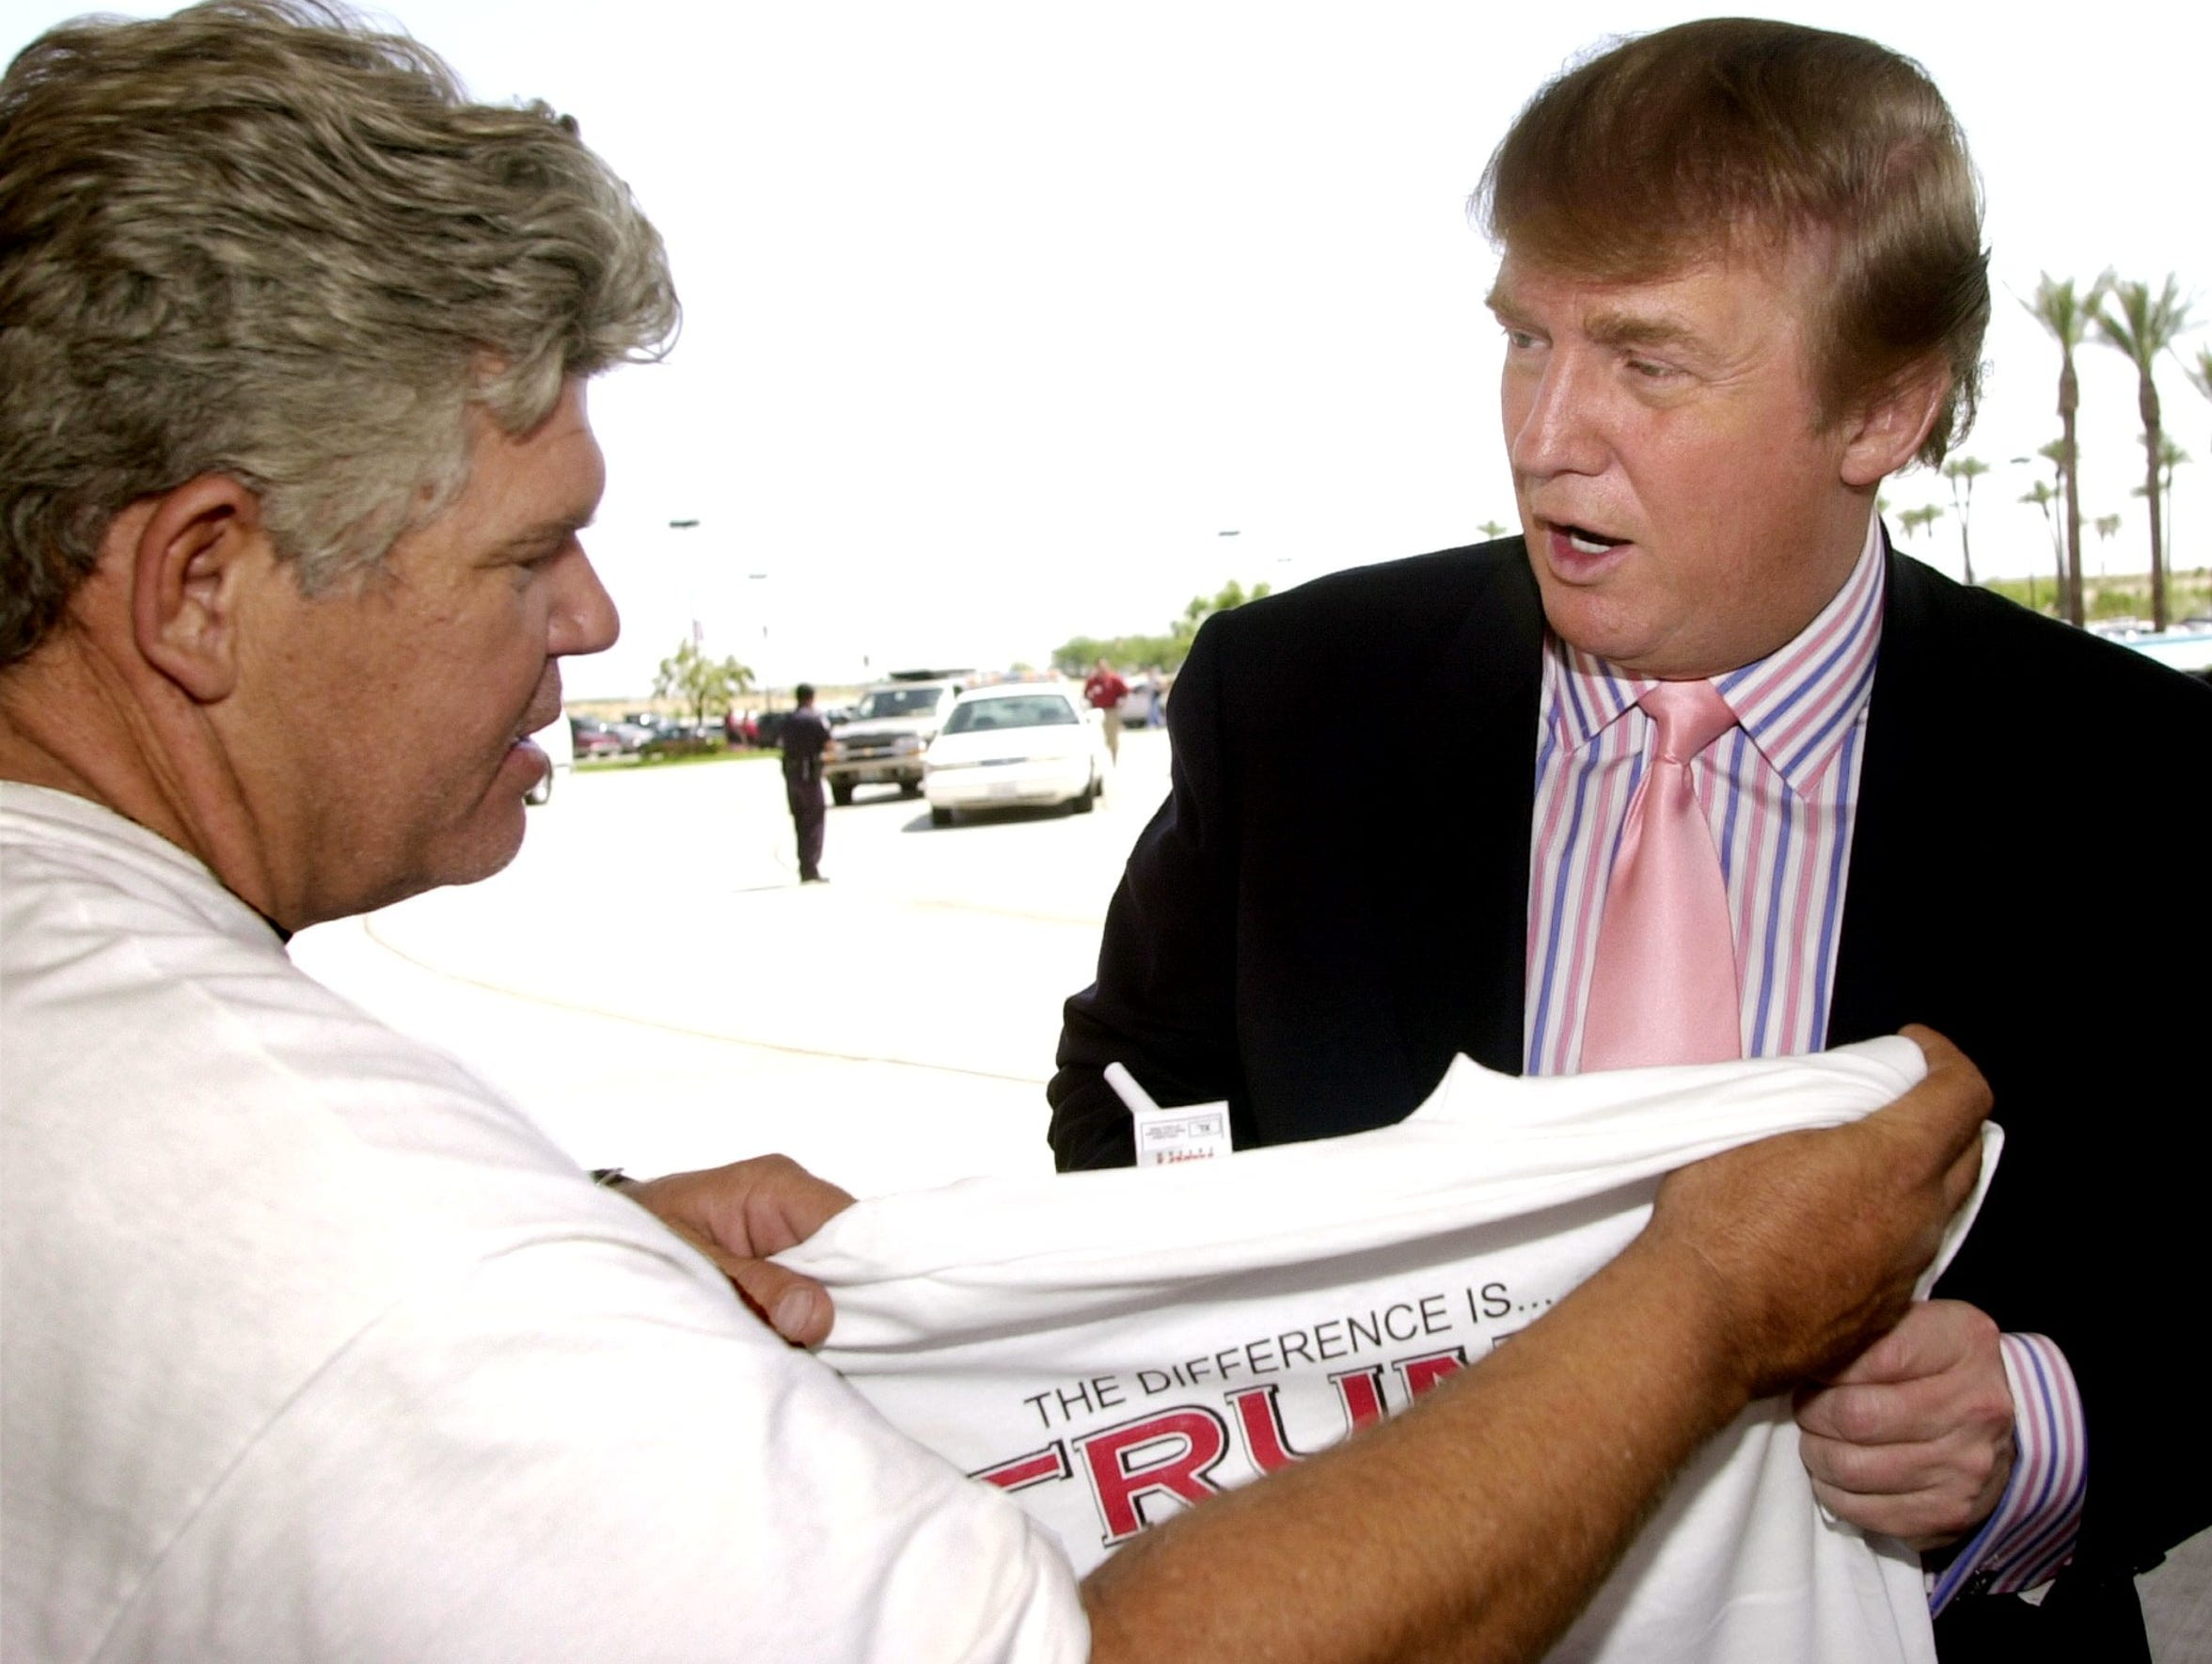 Donald Trump puts his autograph on a t-shirt after